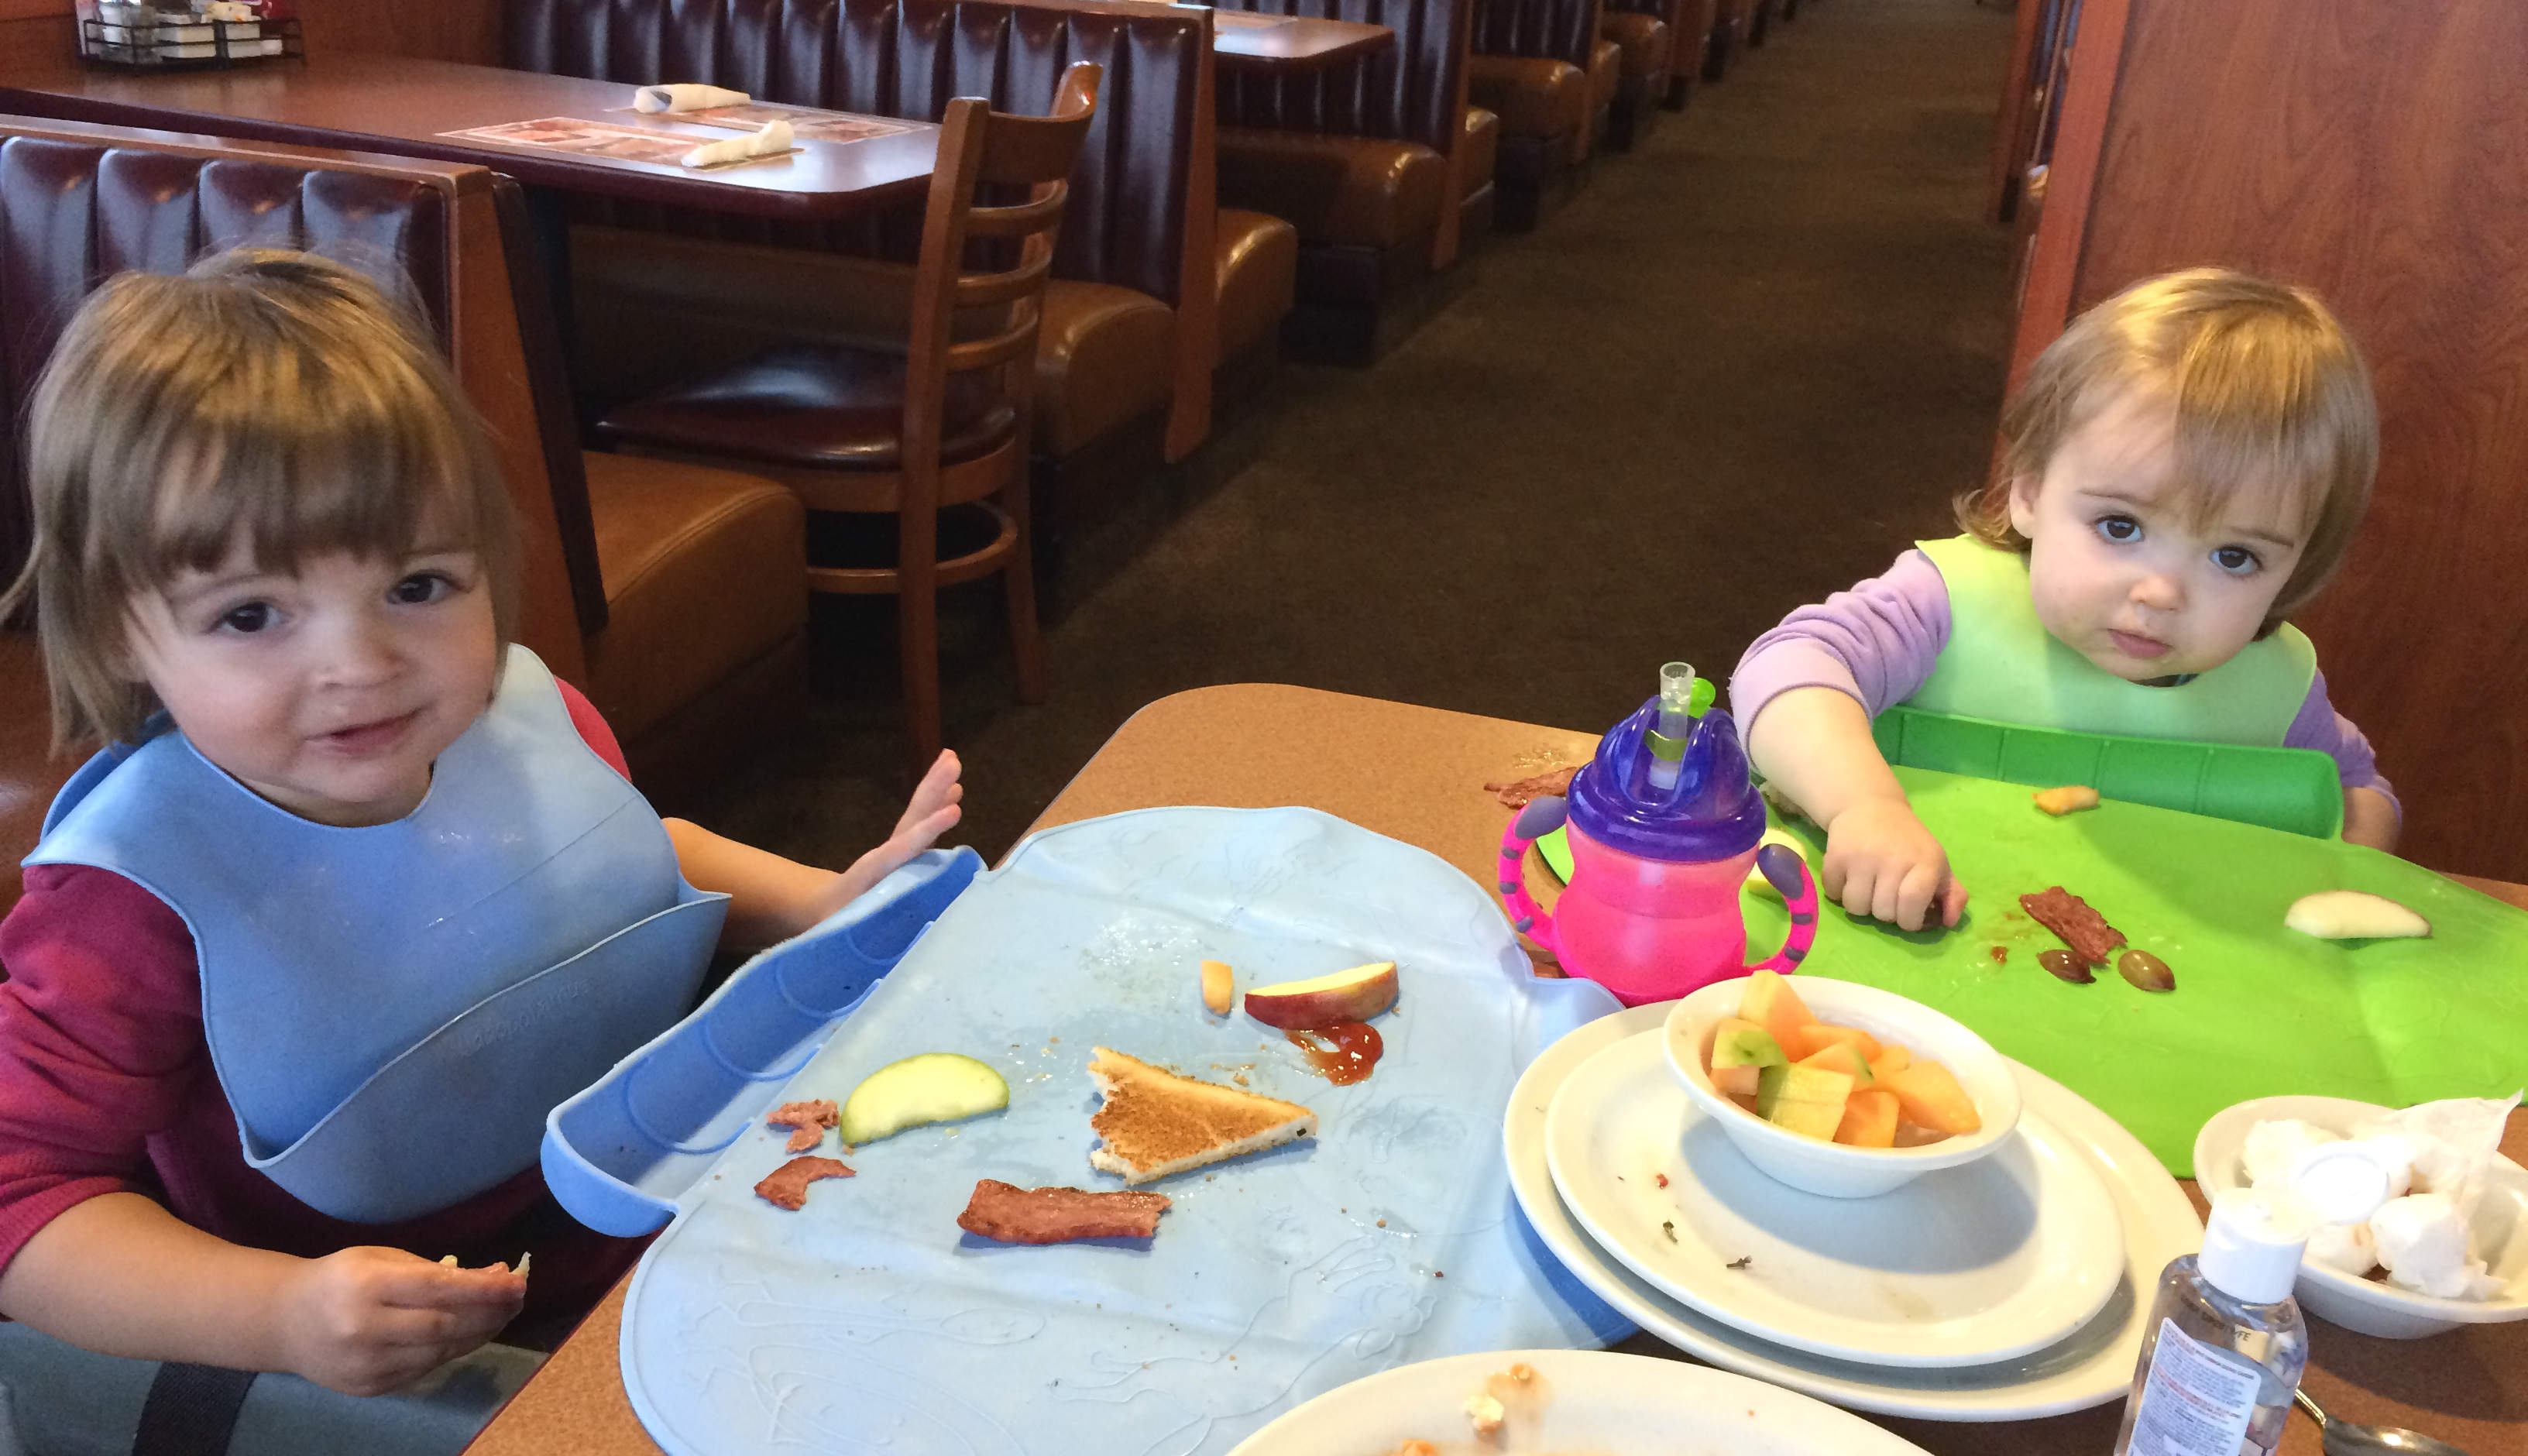 Mia and Everly at Dennys